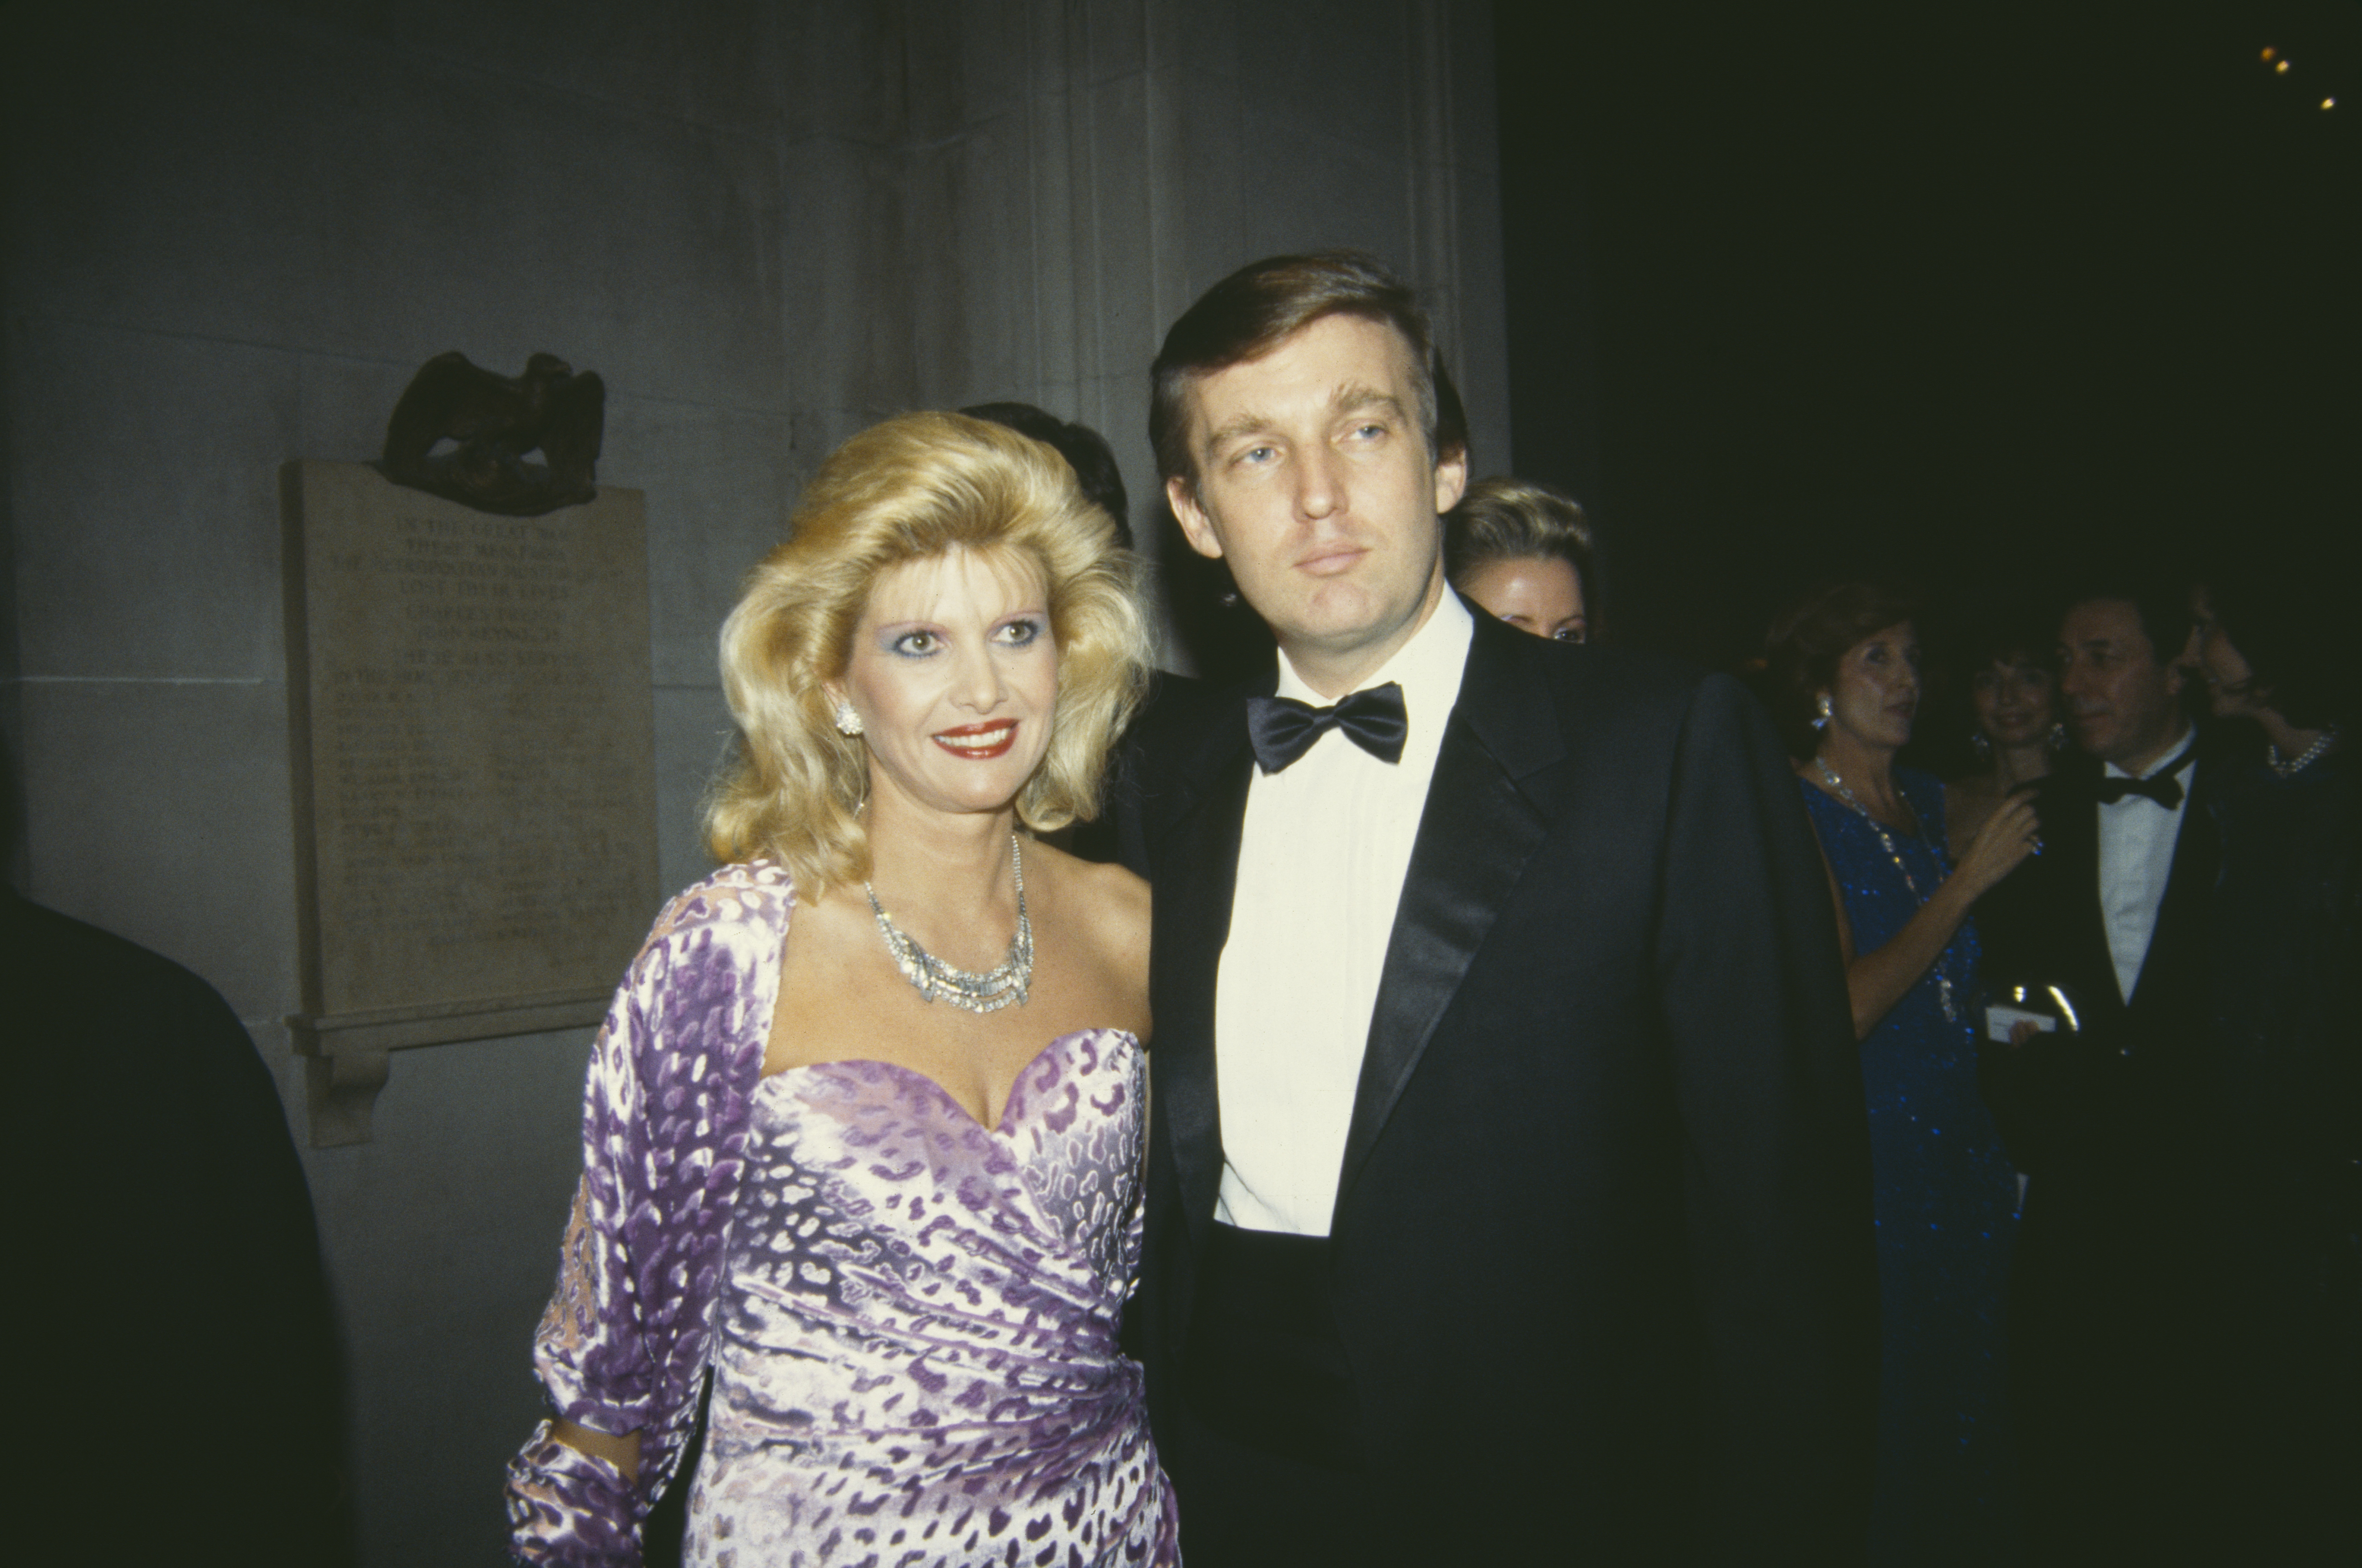 Donald Trump apparently once told his then wife Ivana to 'never look a day over 28'